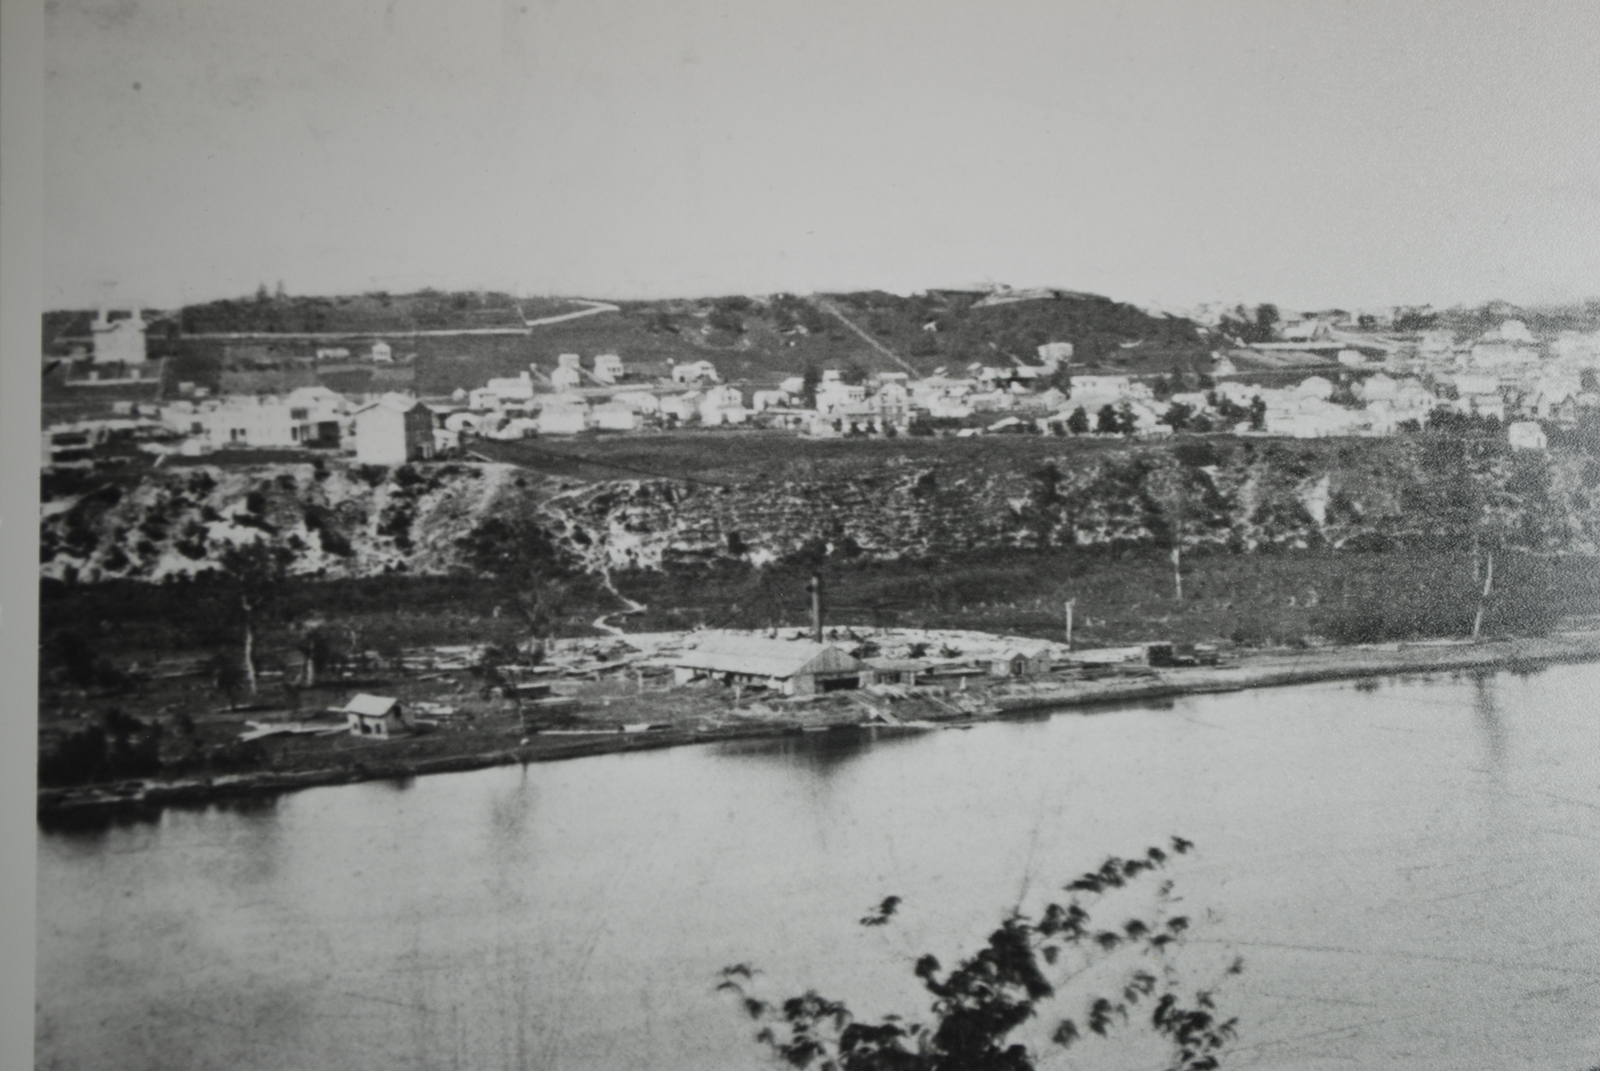 Uppertown, St. Paul in 1860. The Waldman House is just beyond the left edge.  William's Ferry is in the foreground; the St. Paul College (now Little Sisters of the Poor) is the prominent building on the bluff above.